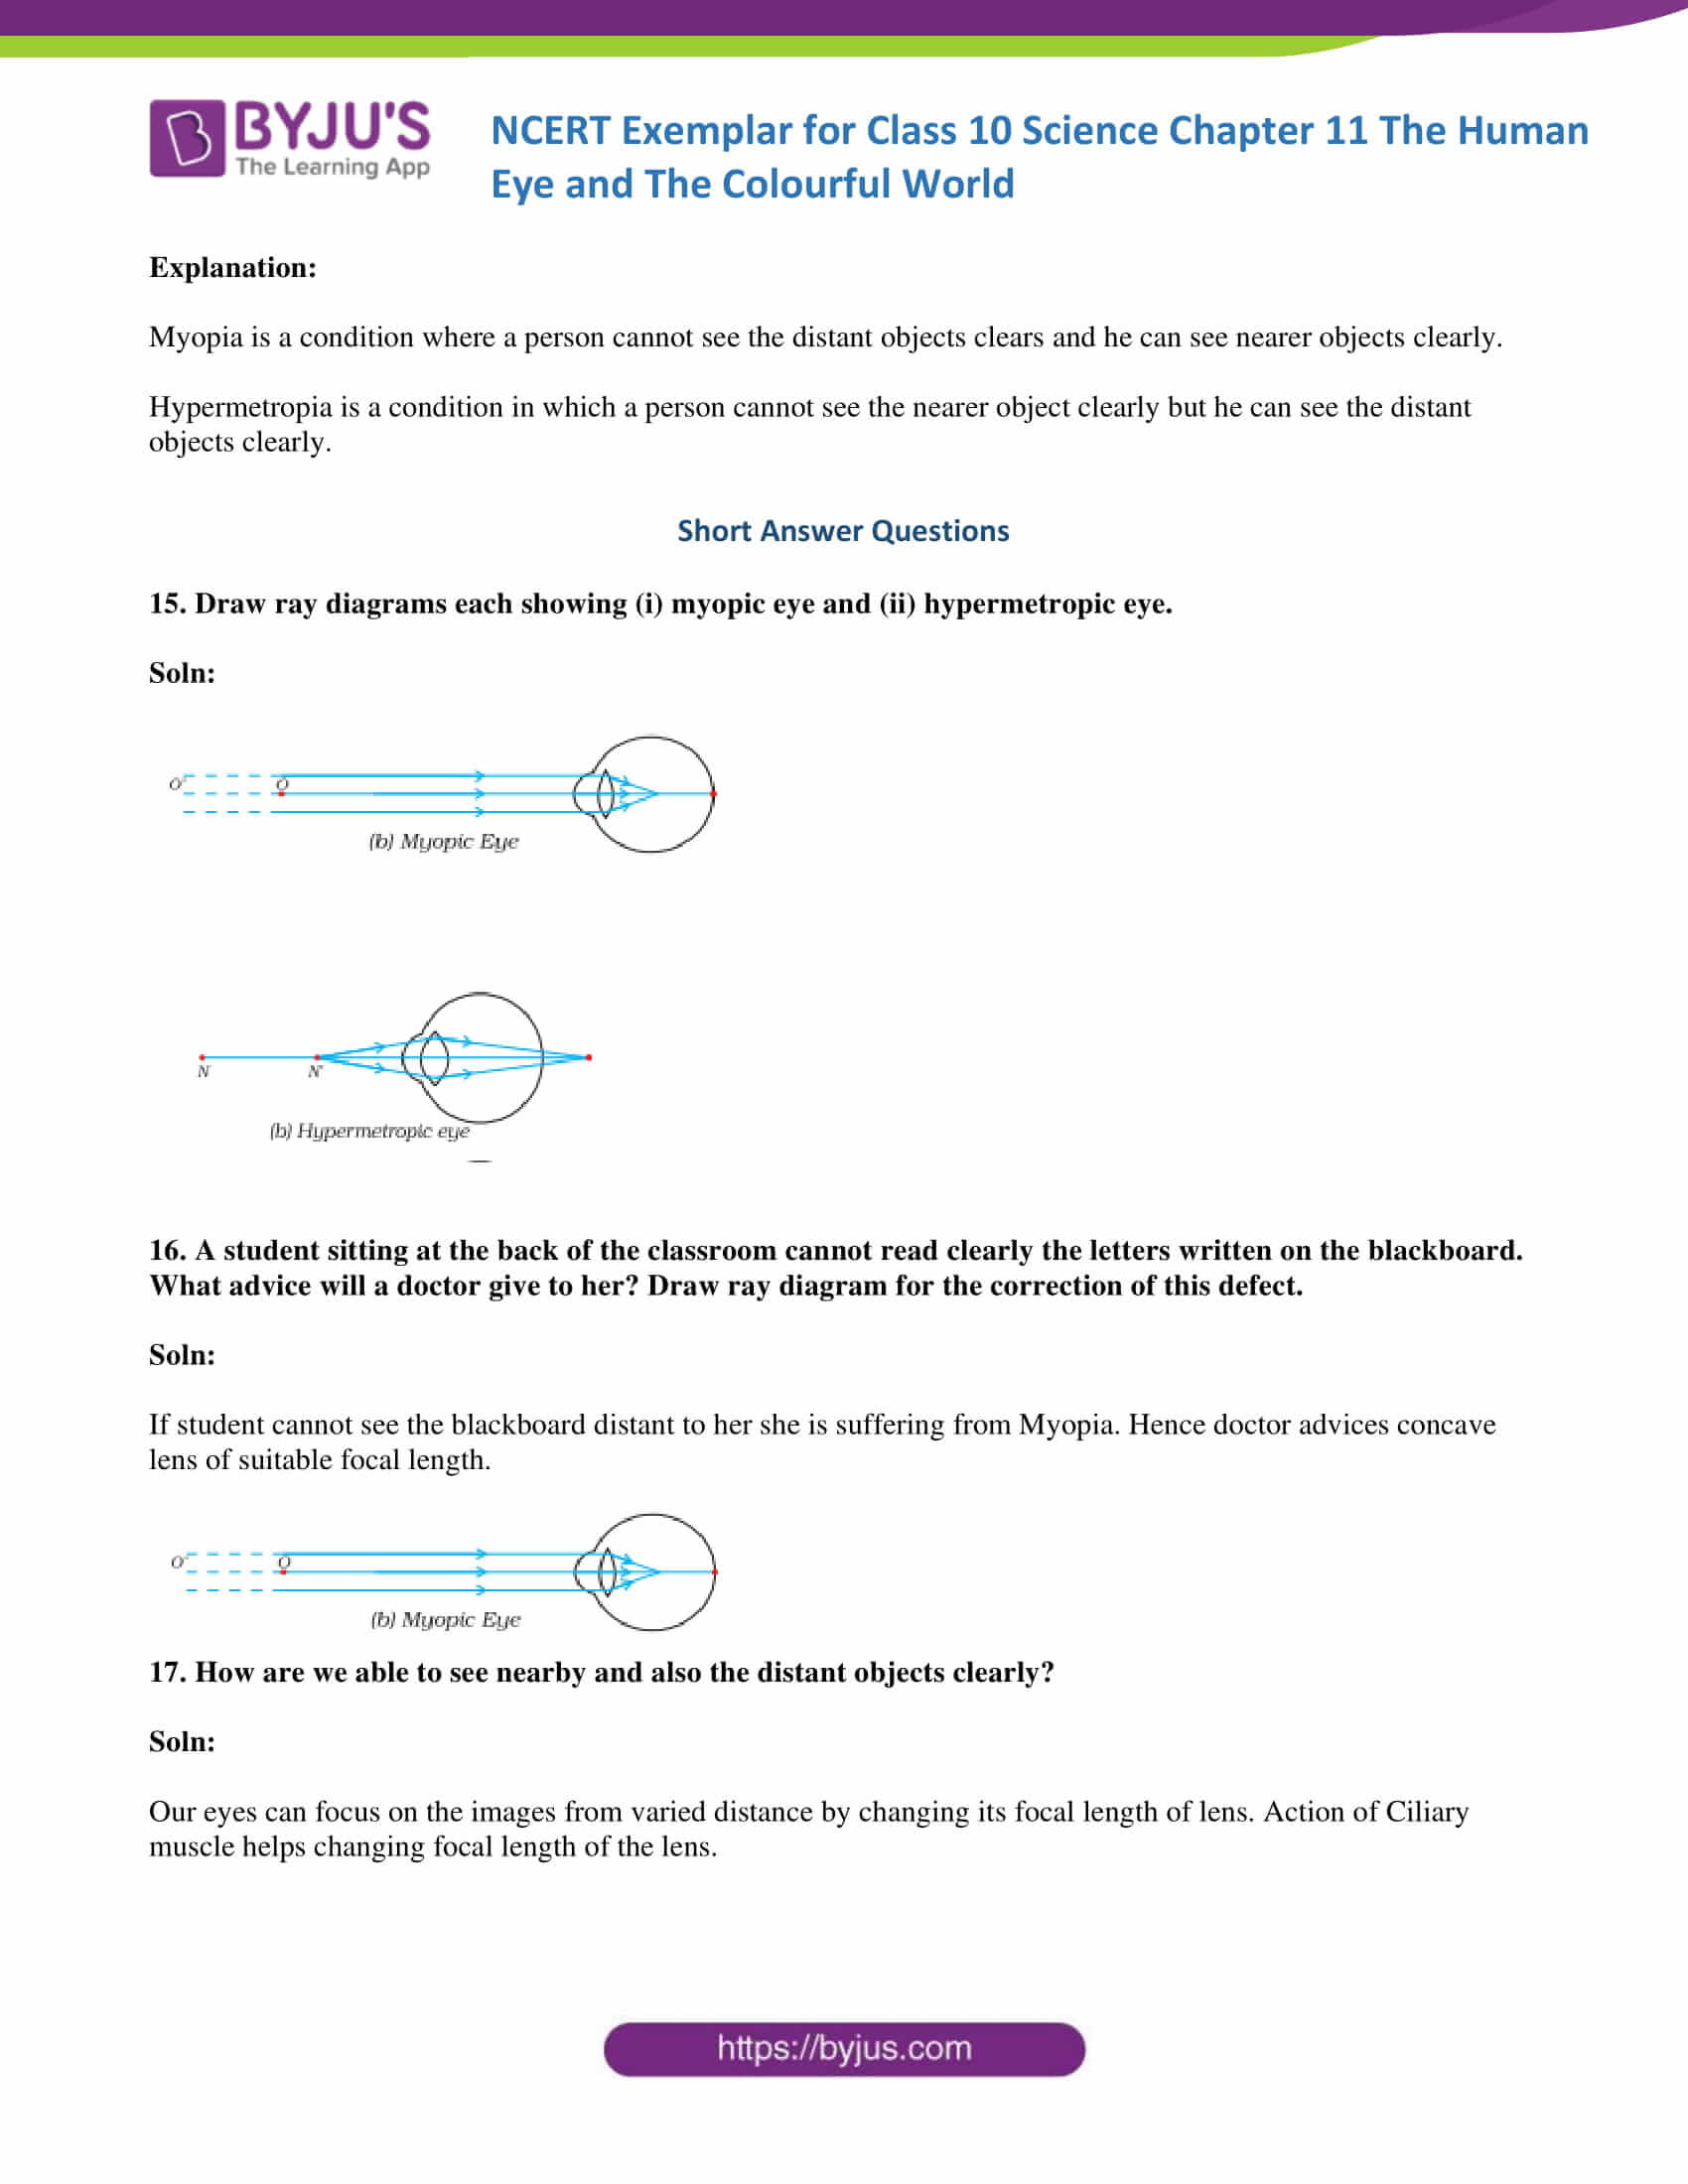 NCERT Exemplar solution class 10 science Chapter 11 part 06